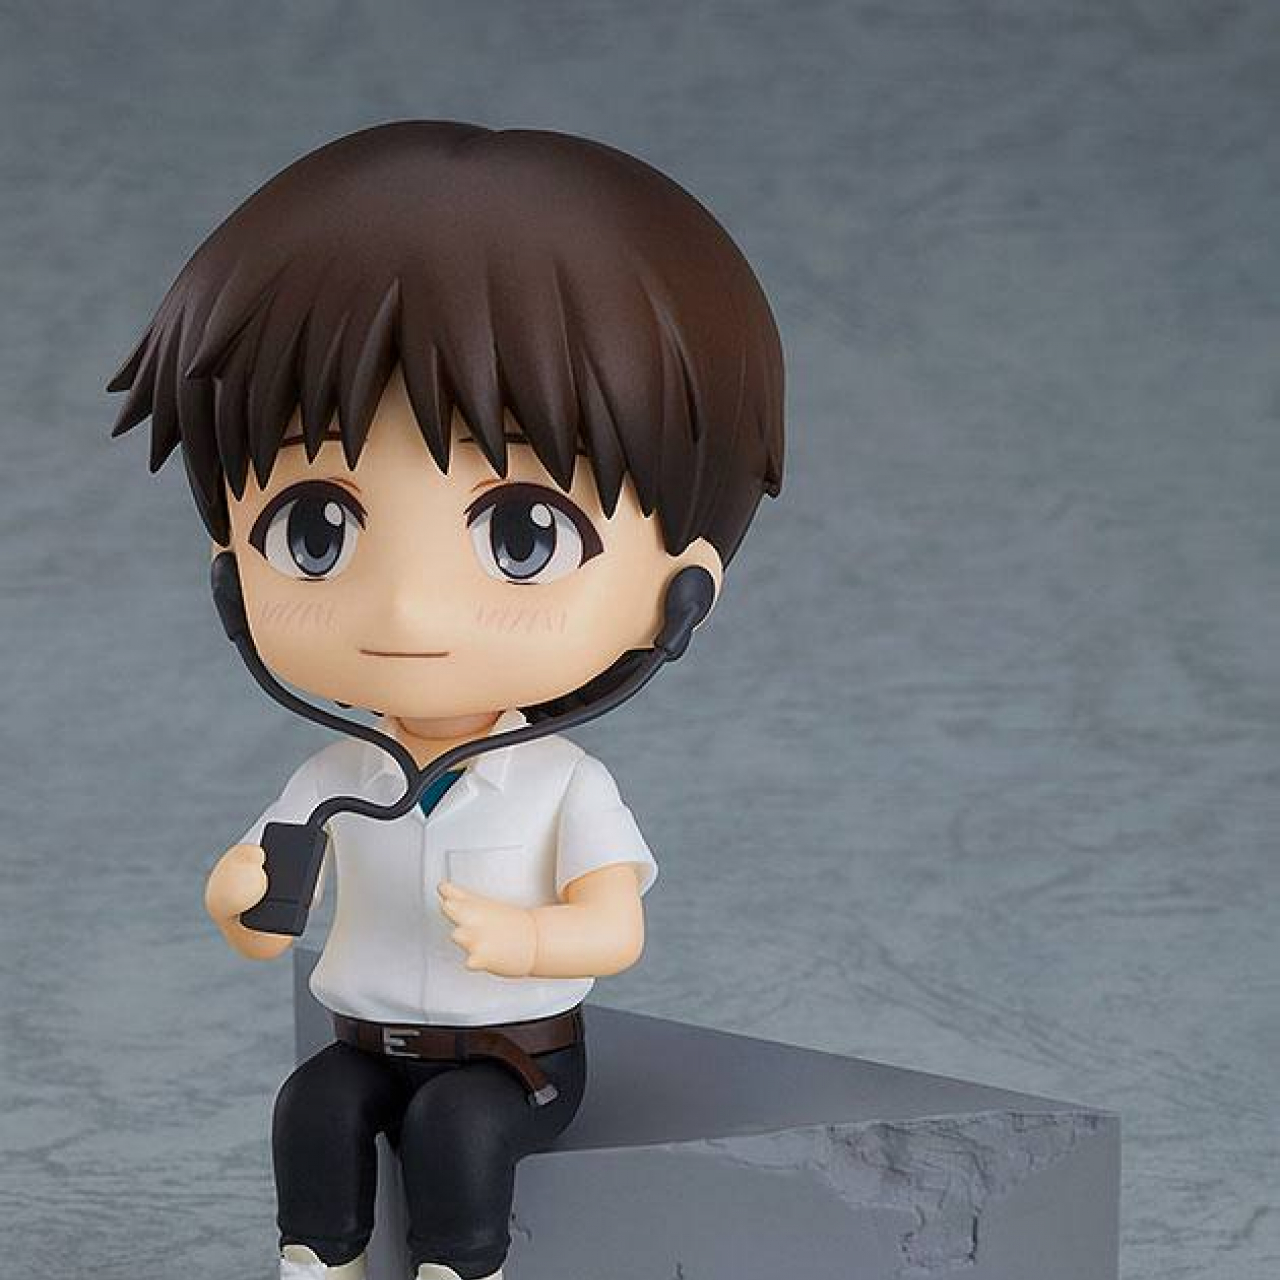 Rebuild of Evangelion Nendoroid Action Figure Shinji Ikari 10 cm